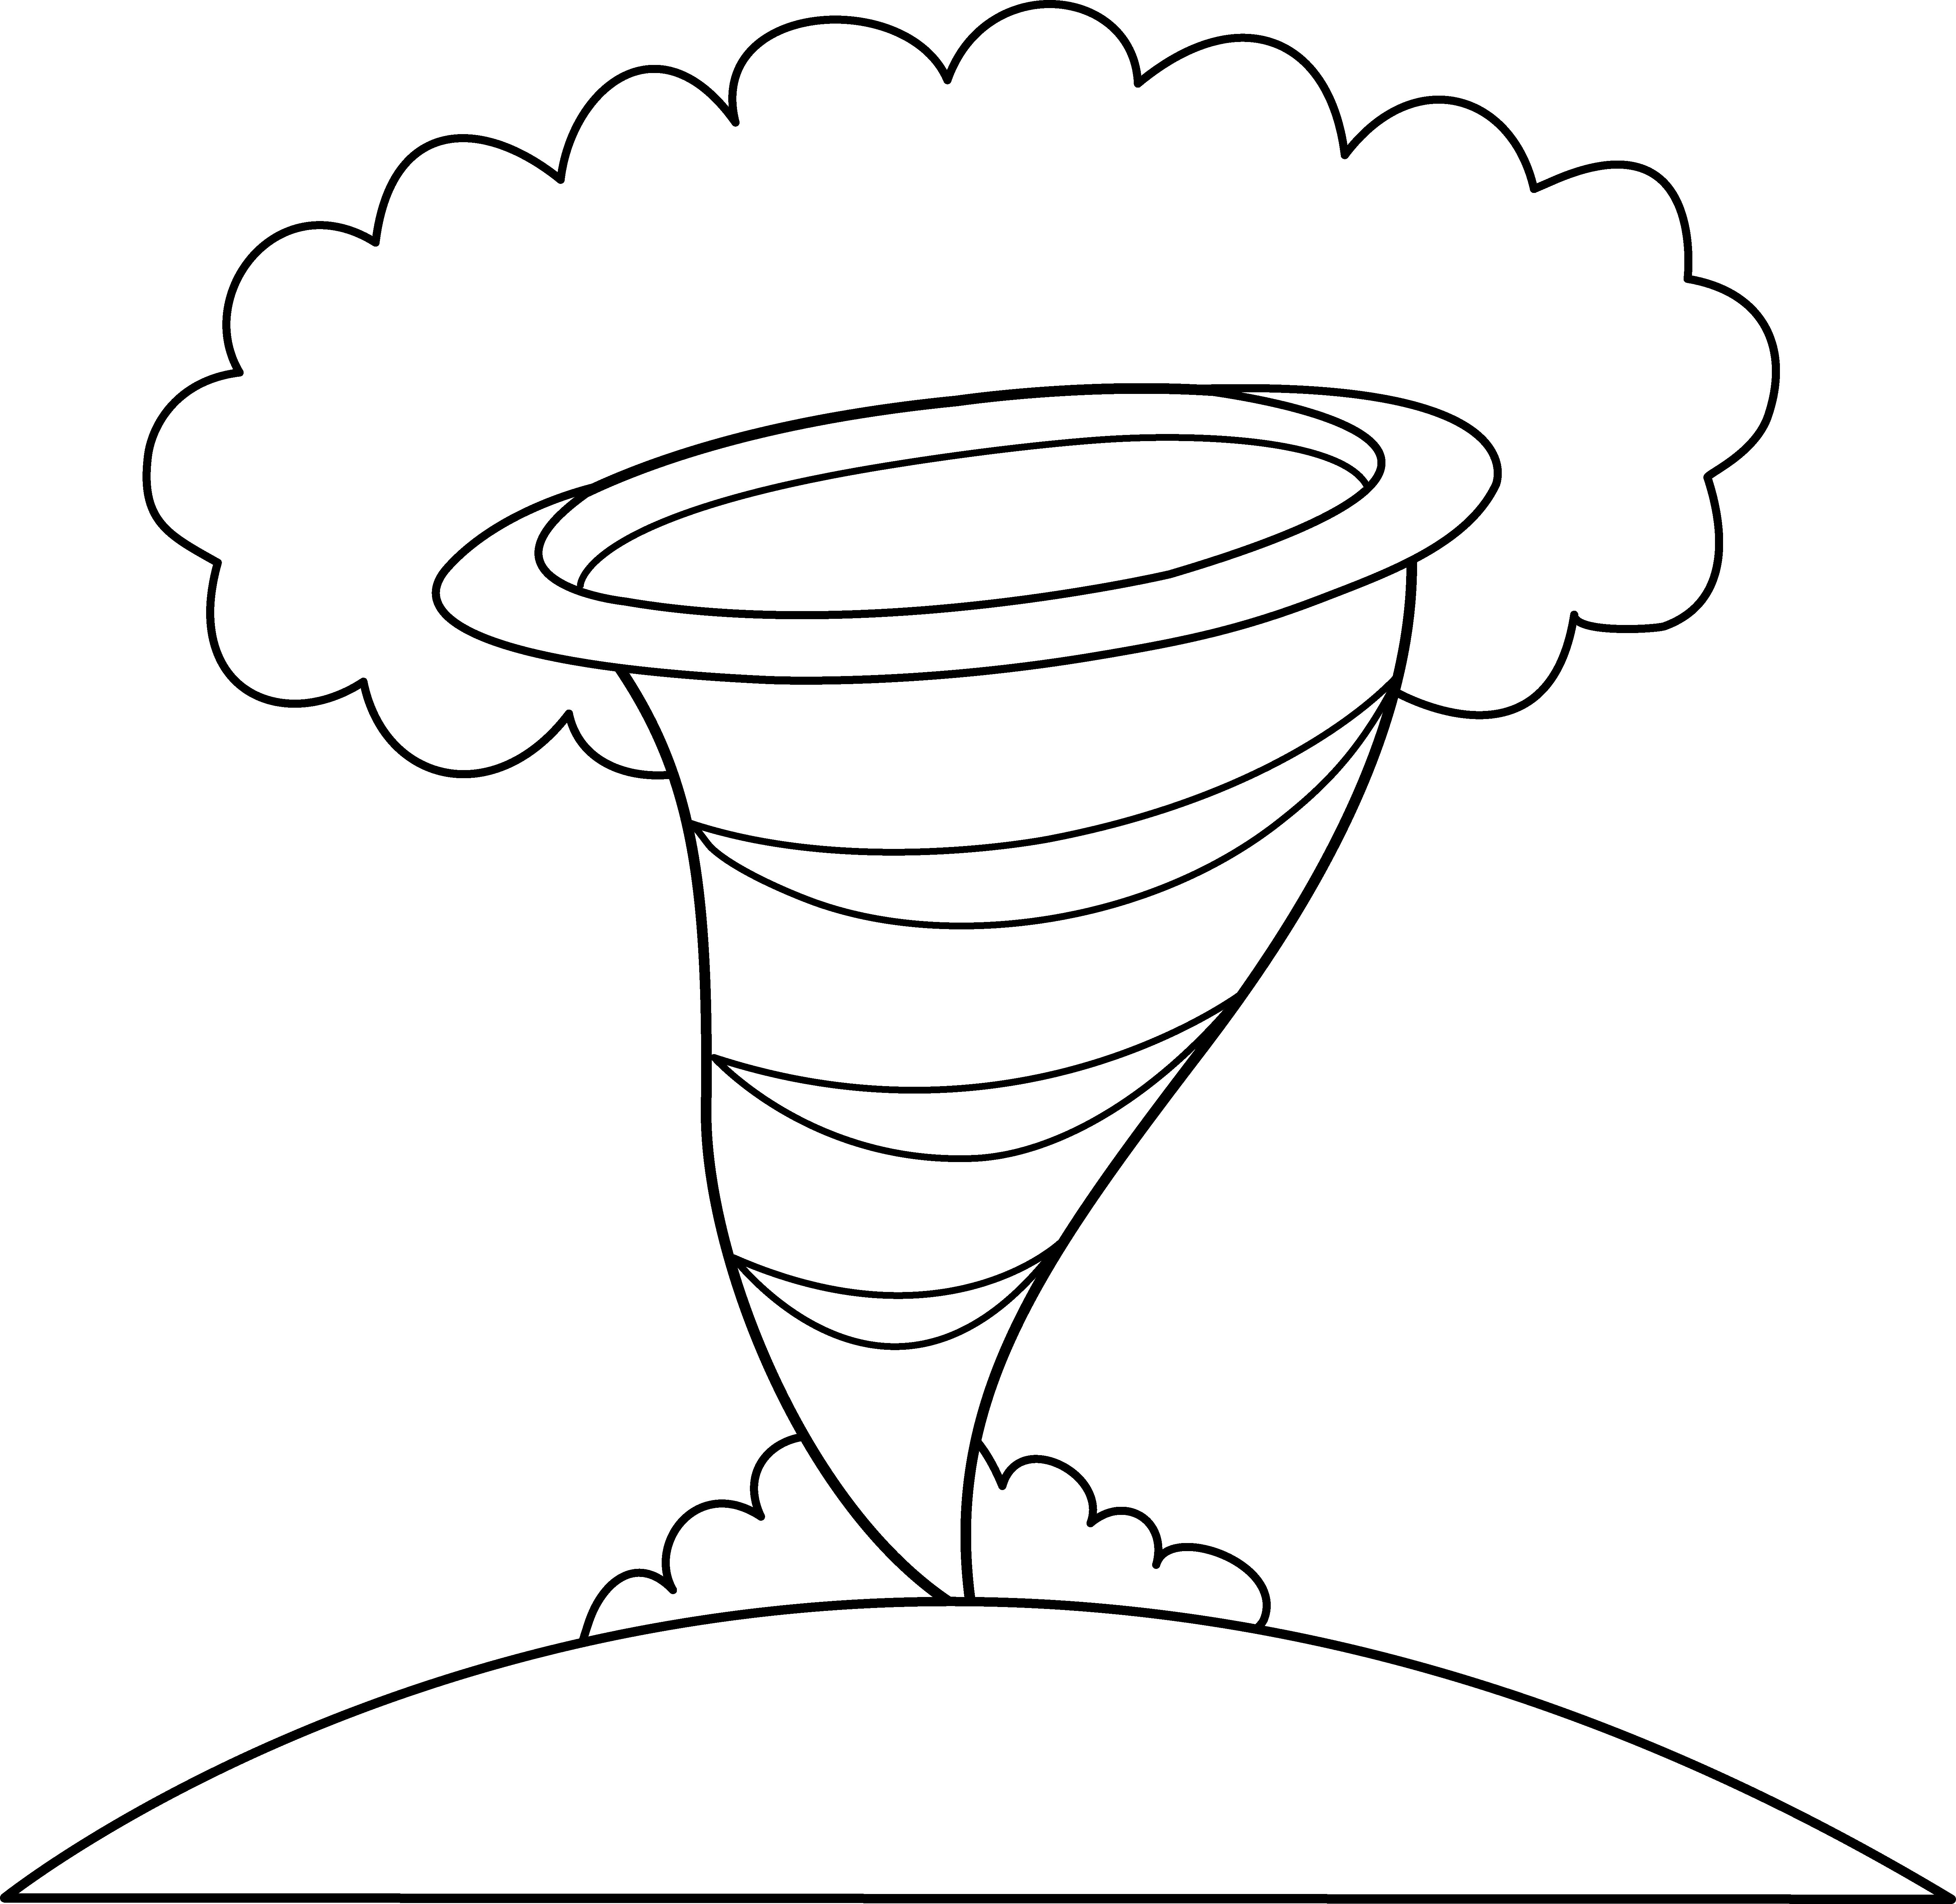 banner freeuse download Tornado Coloring Page Clipart